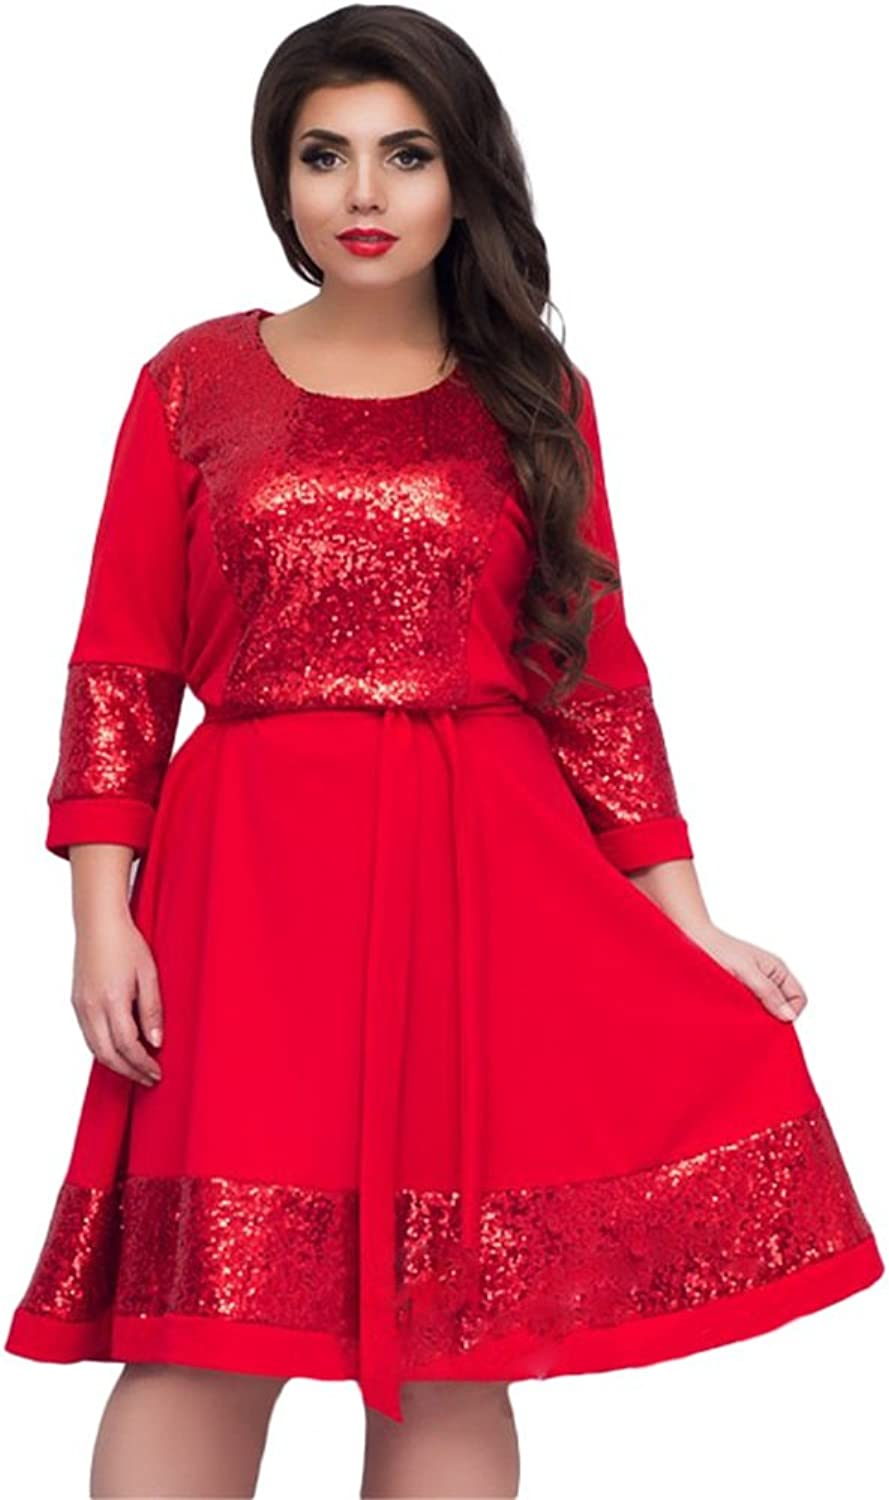 Women's Fluffy Dress,Ladies Fashion Belted Casual Round Neck Party Prom Dress,L6XL (color   Red, Size   XXL)